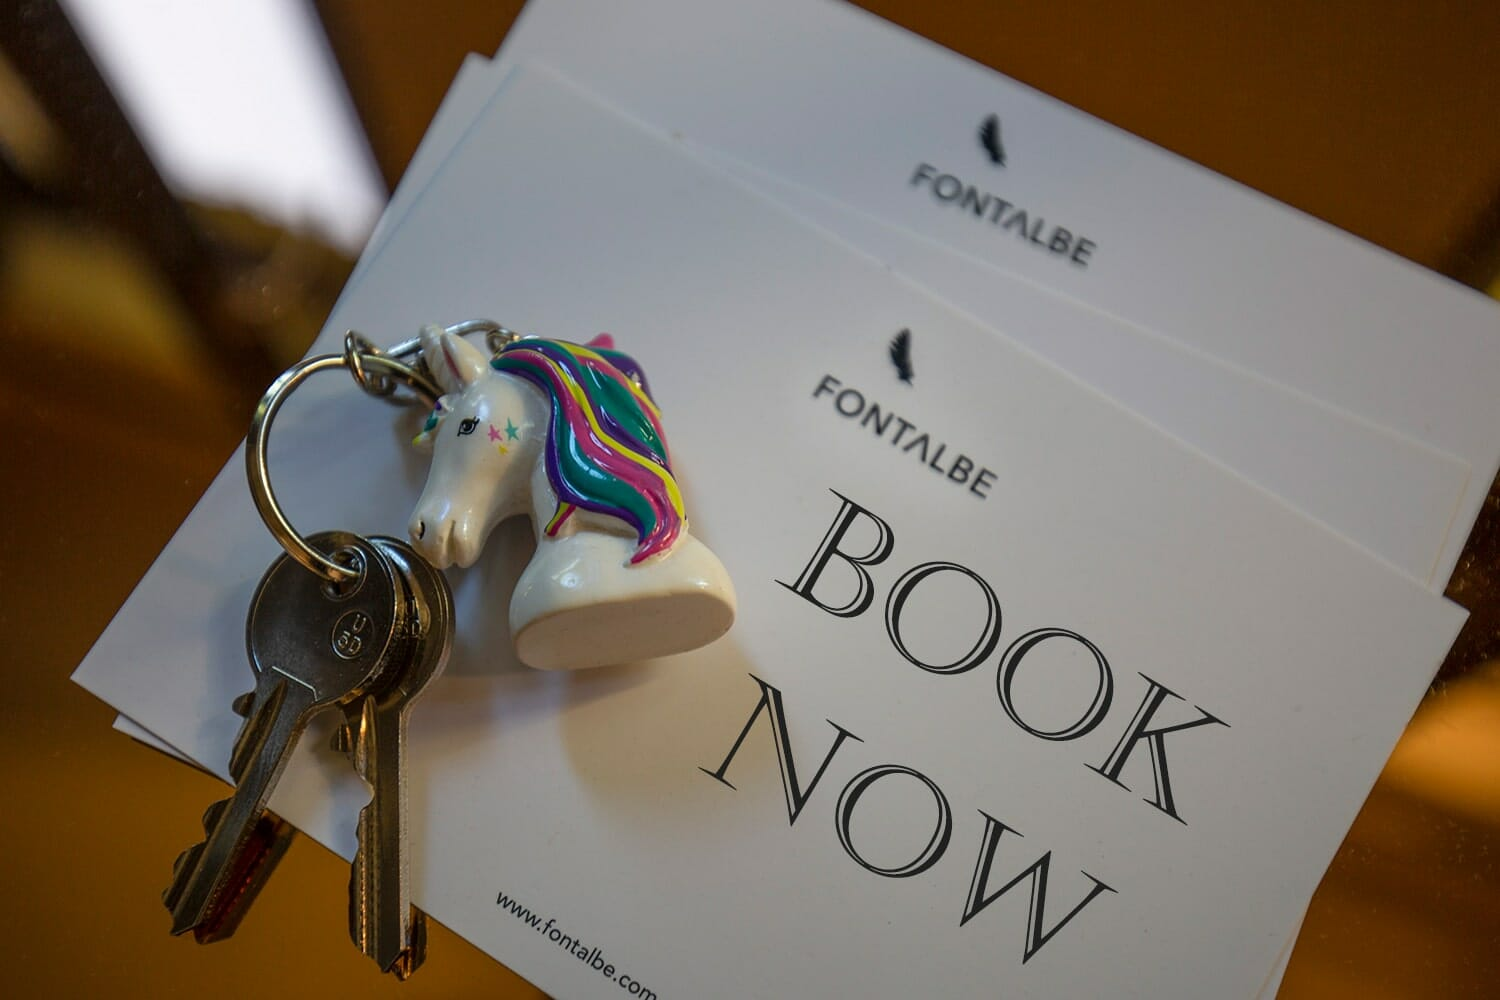 Book your stay here at Fontalbe